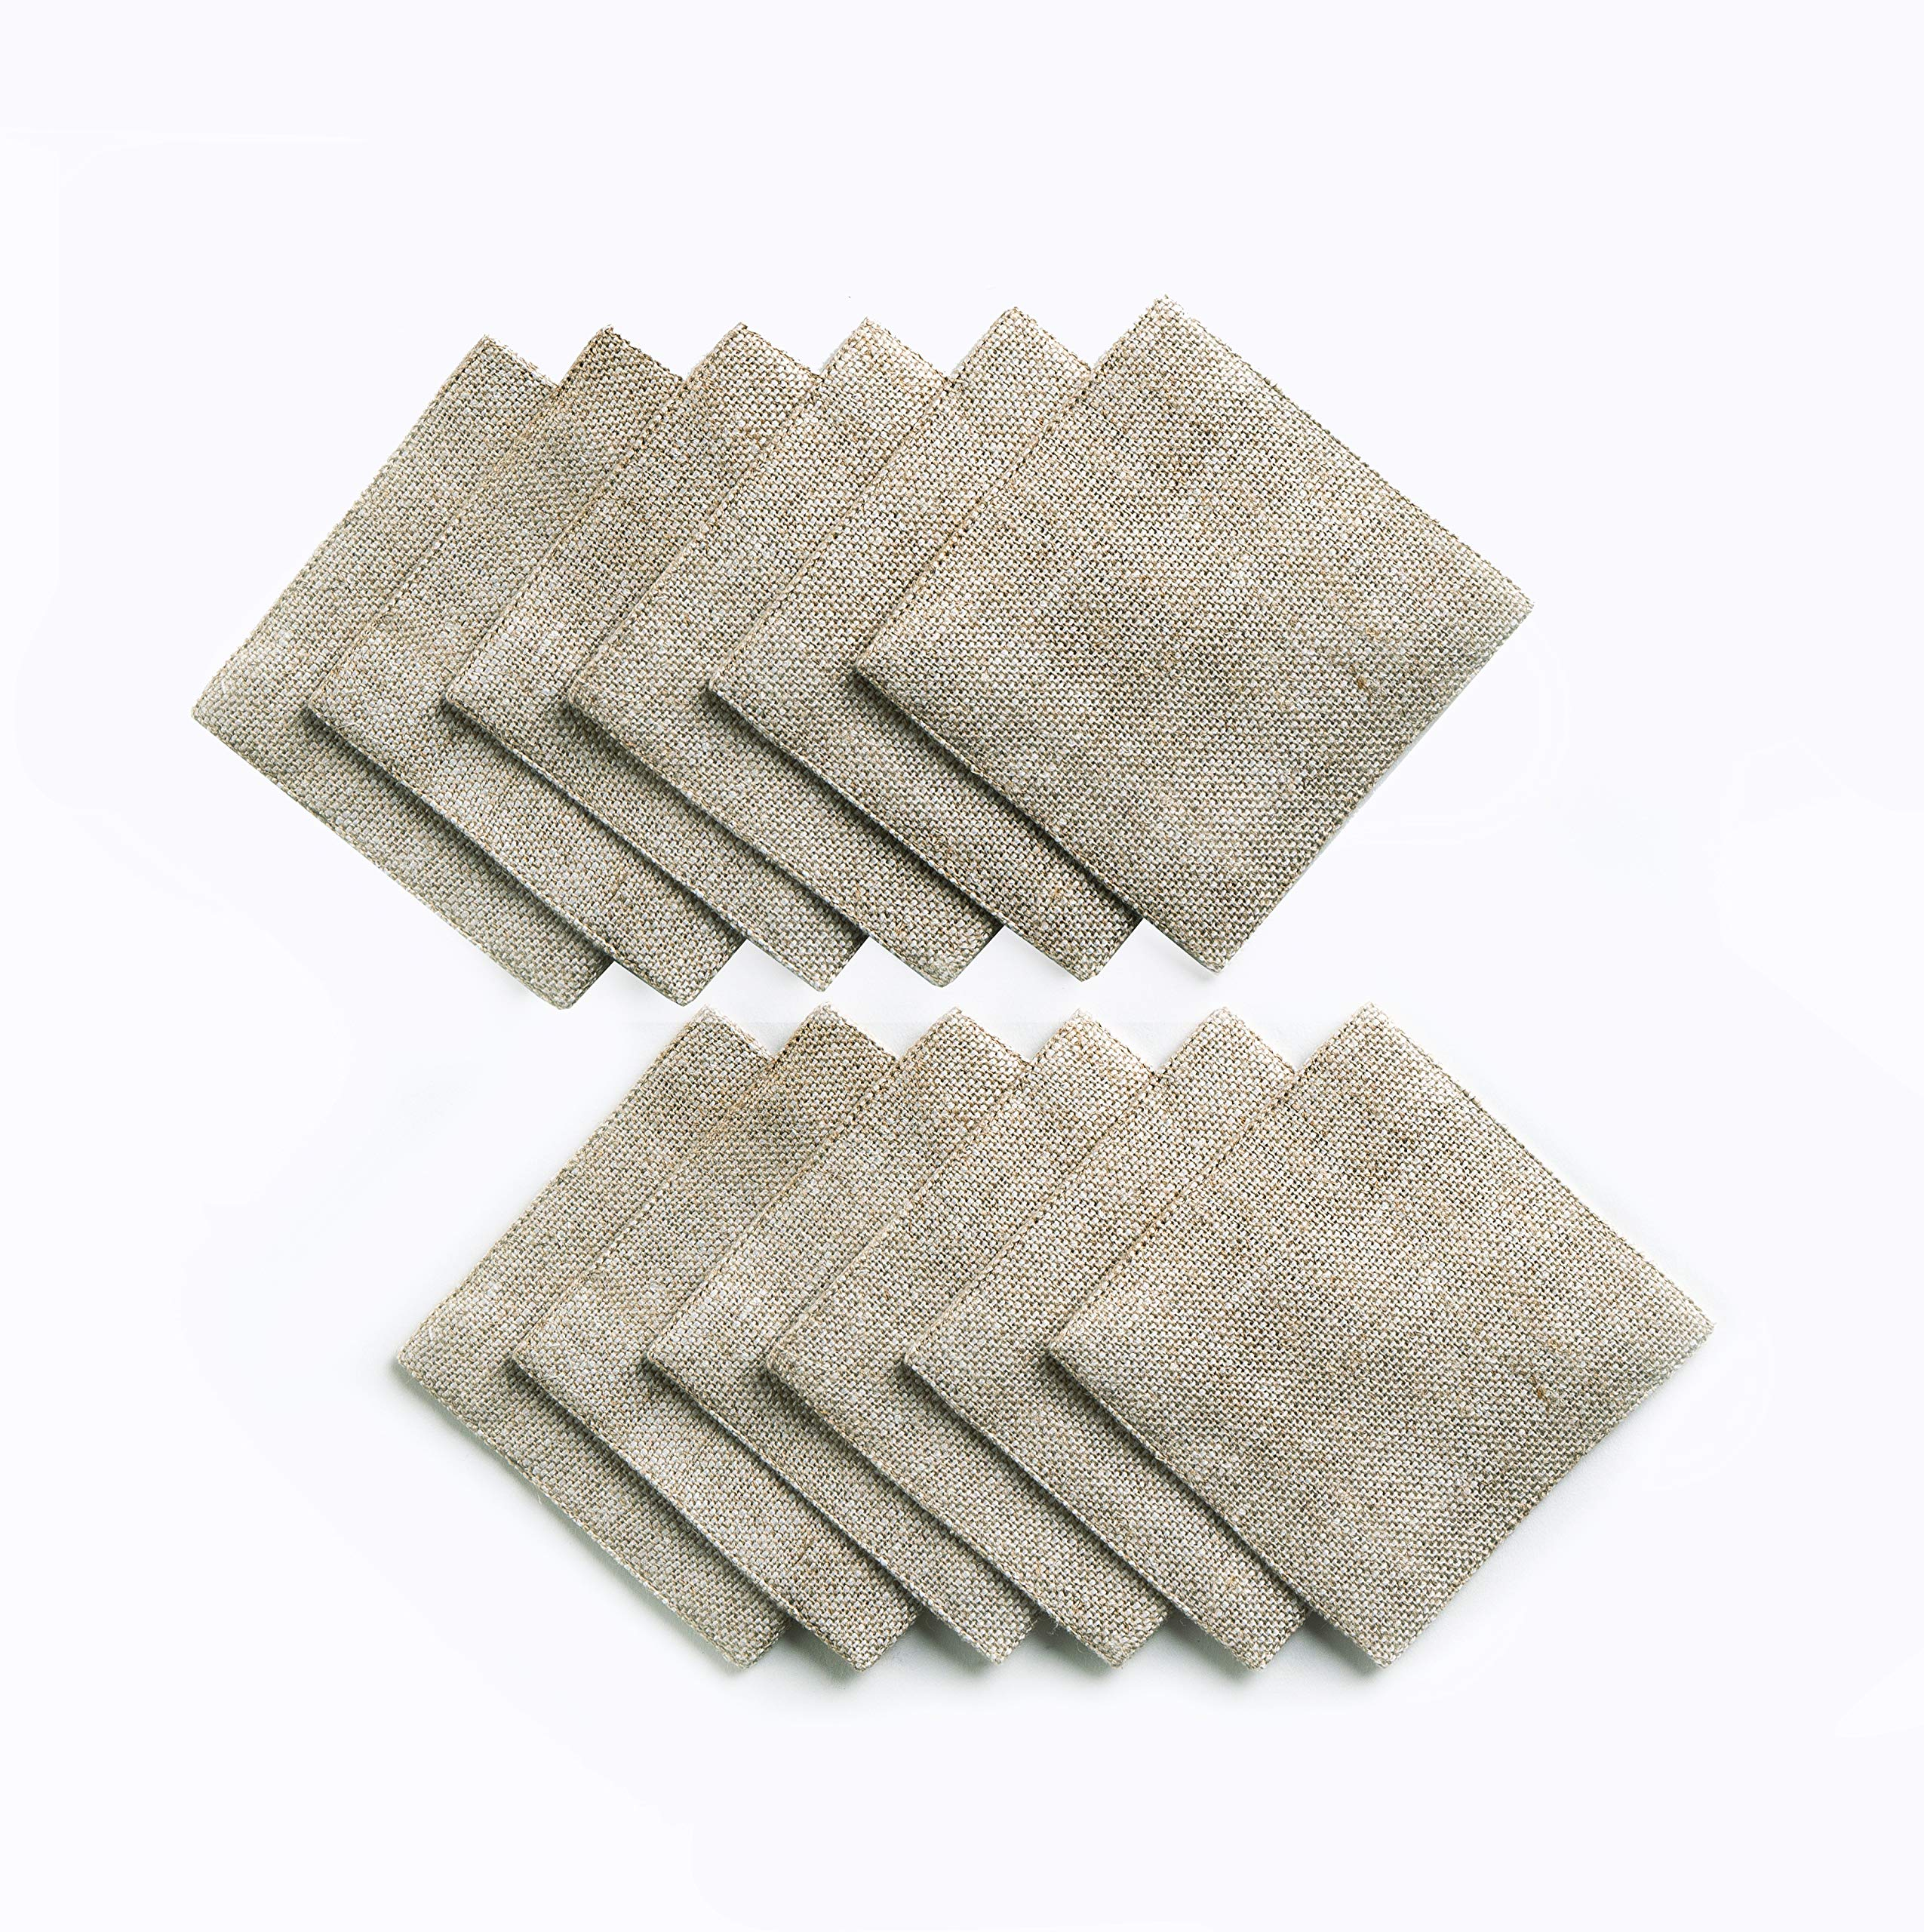 Solino Home Rustic Linen Coasters - 4 x 4 Inch, Set of 12 Handwoven and Handcrafted - Natura Collection, Light Soil Coaster